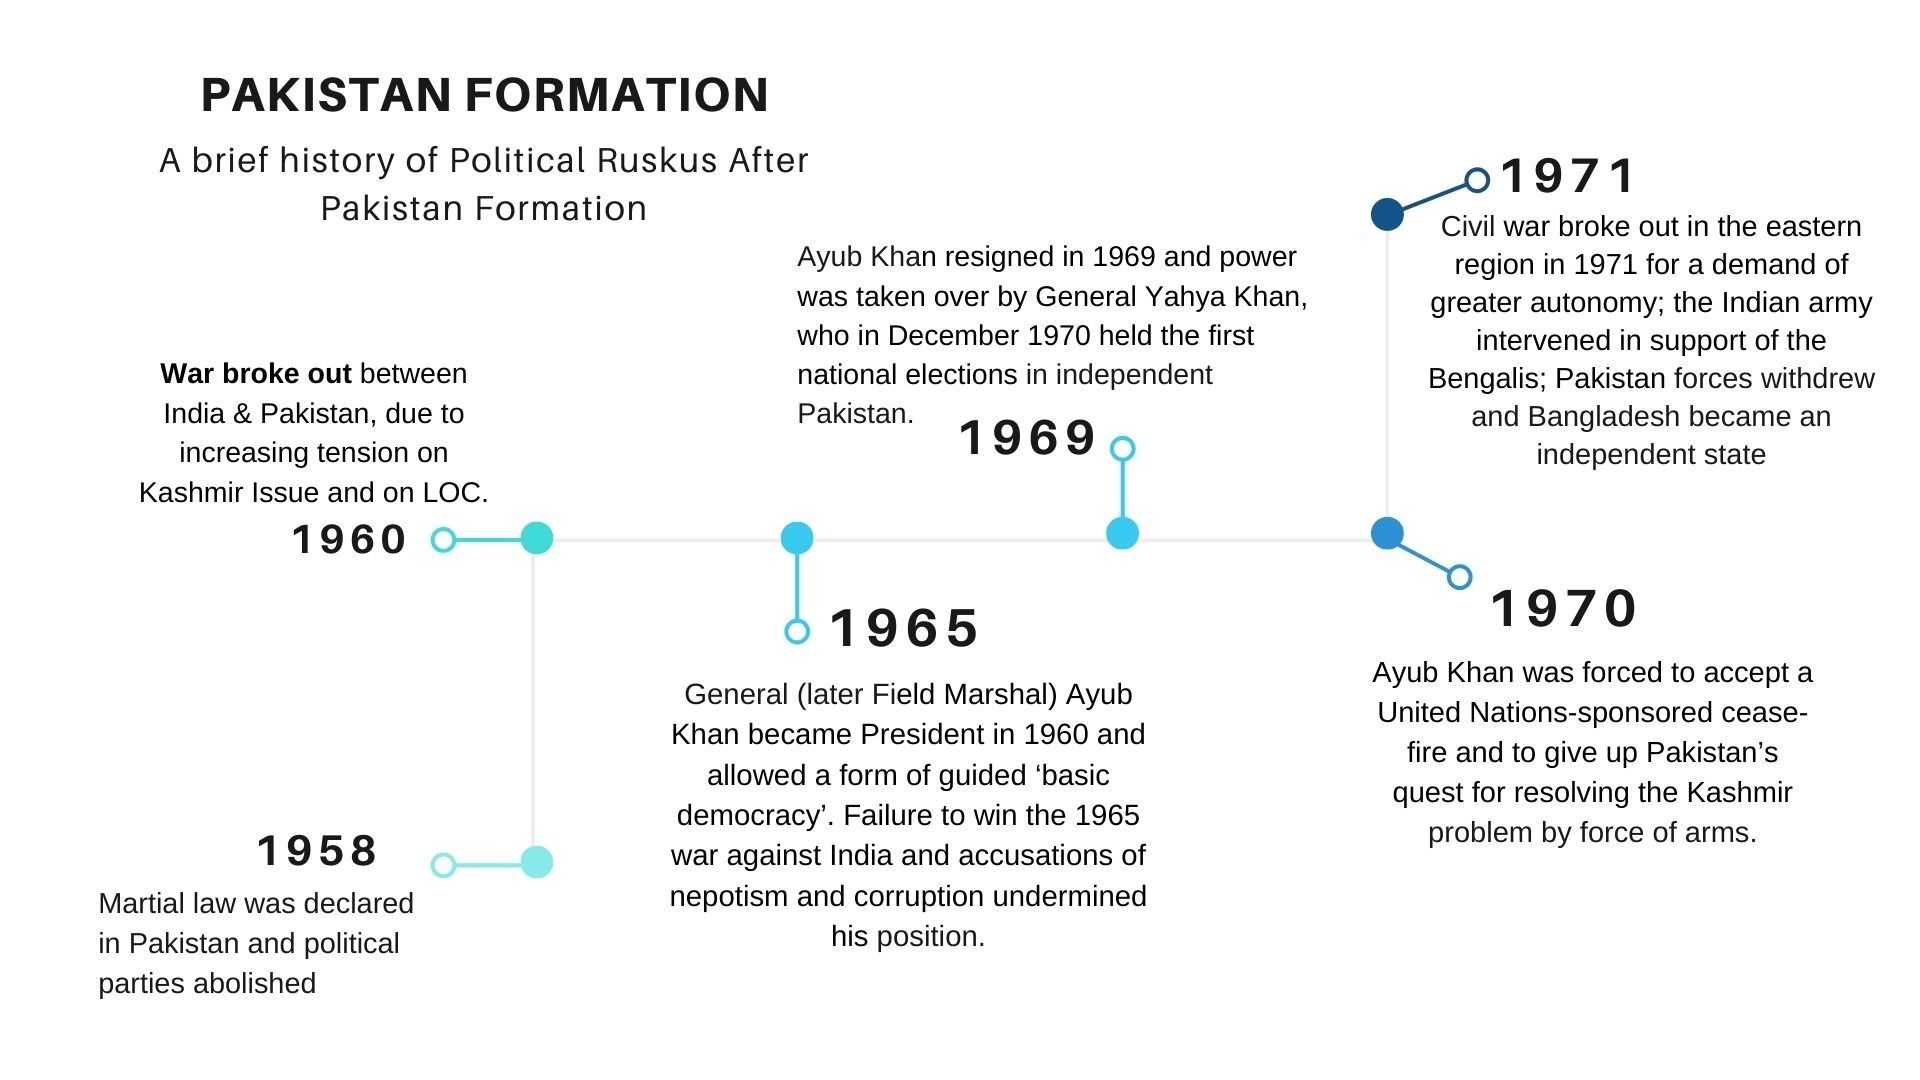 Formation of Pakistan - On Pakistan Independence Day